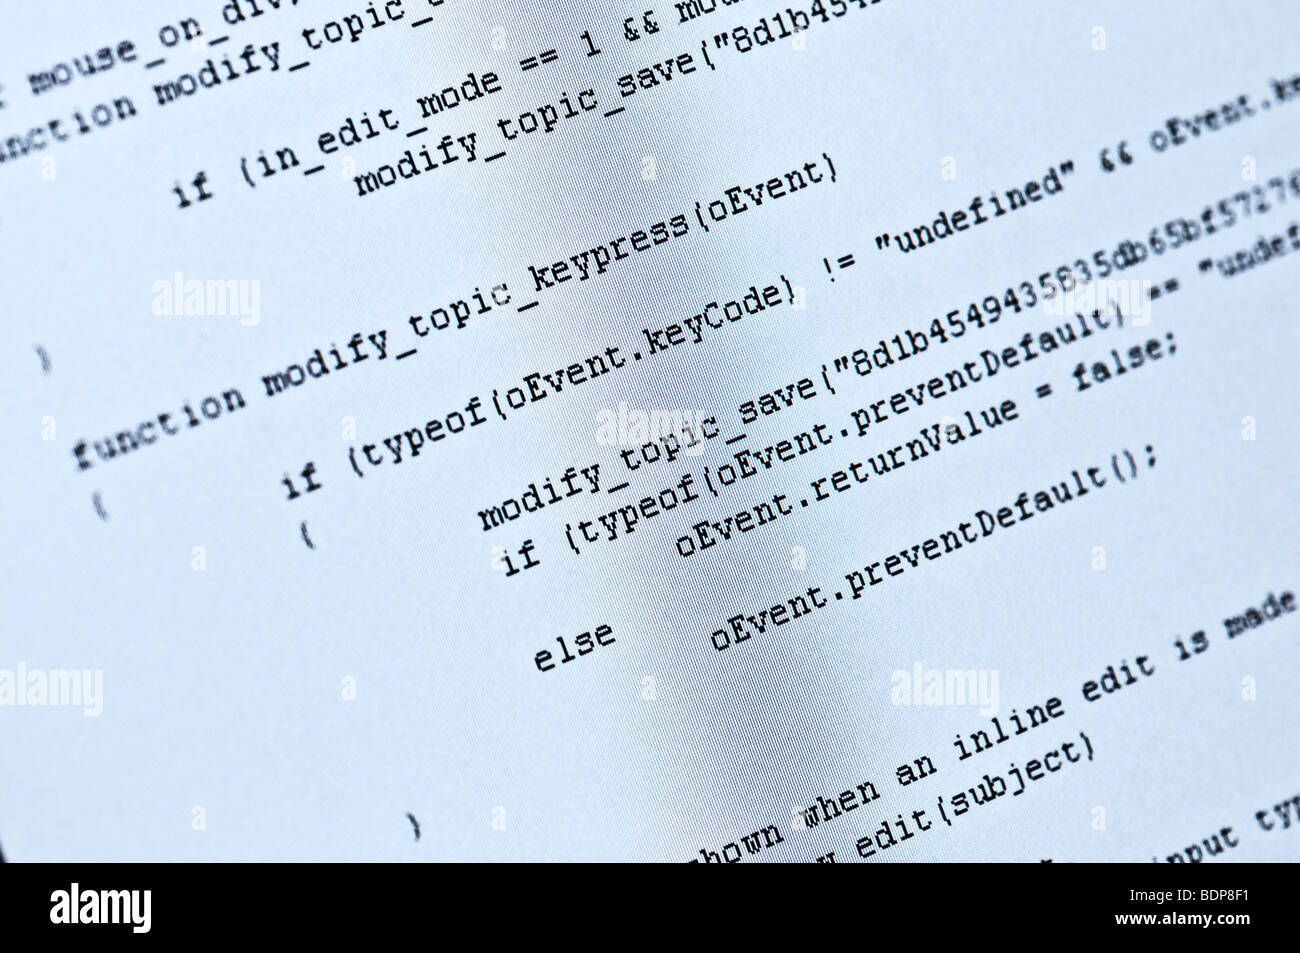 Abstract program code on computer screen - Stock Image